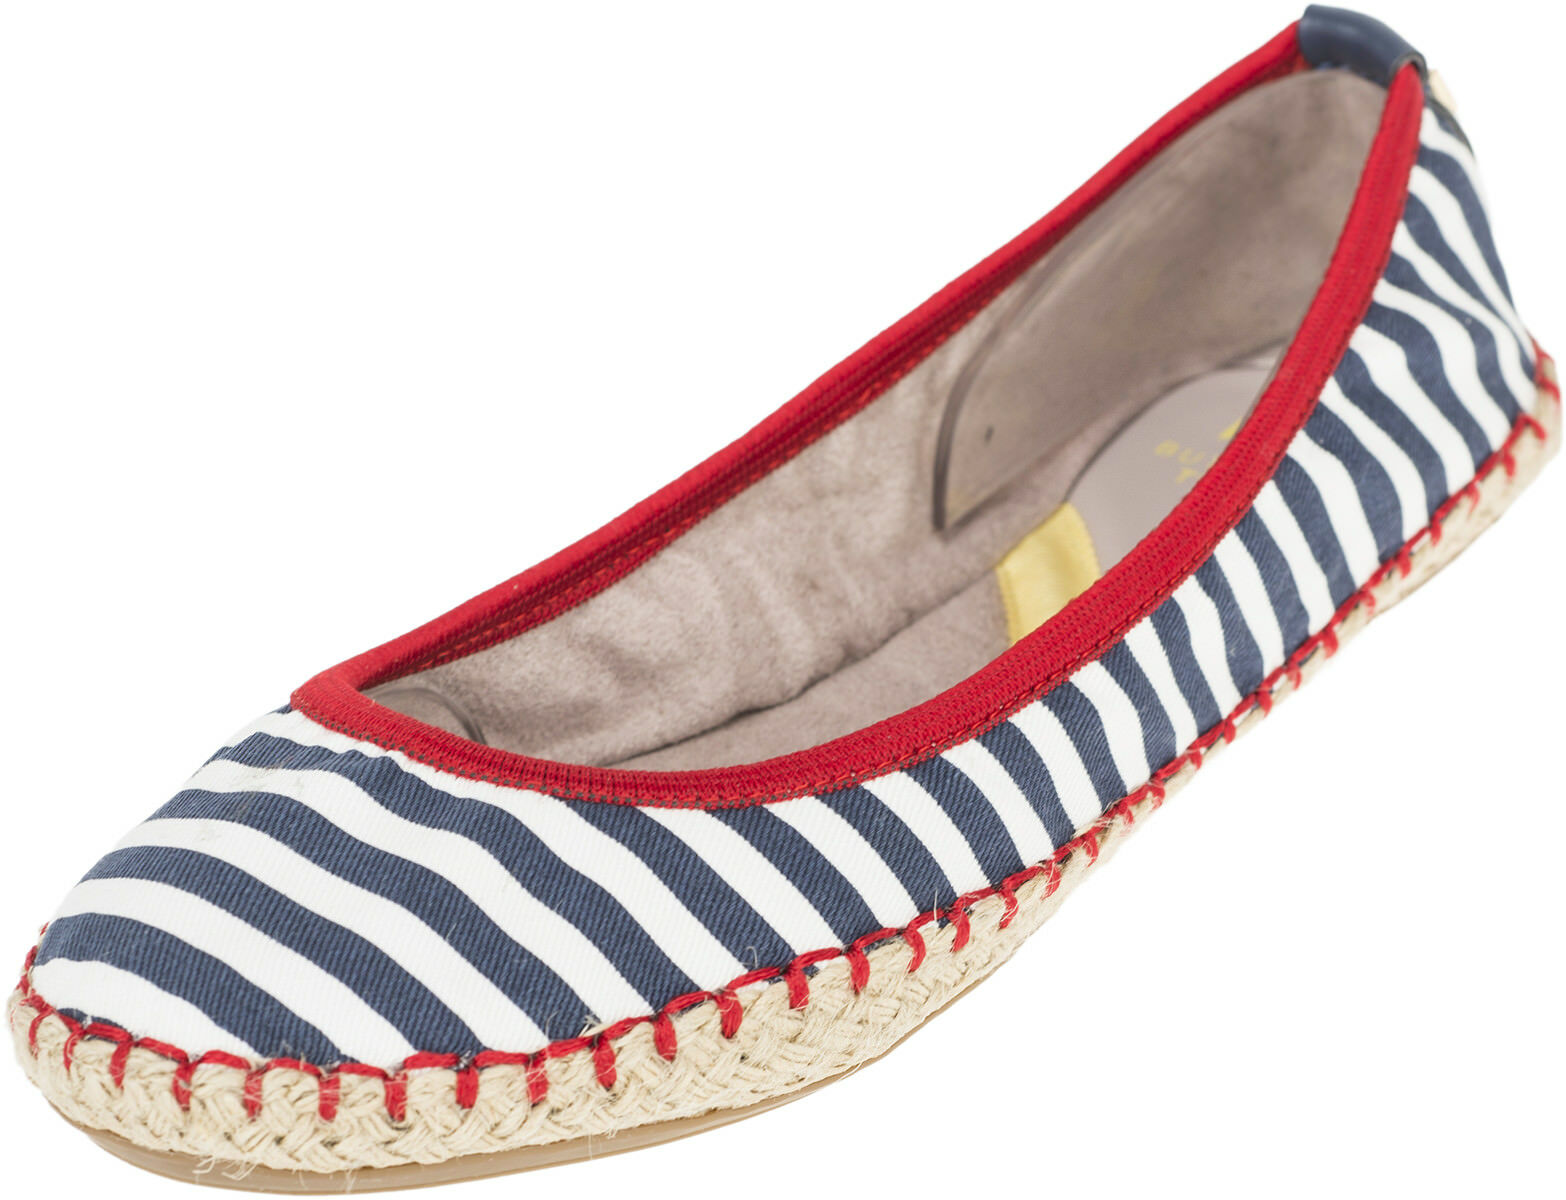 Butterfly Twists GIGI Sailor STRIPES Streifen Jute Flats BALLERINAS Rockabilly